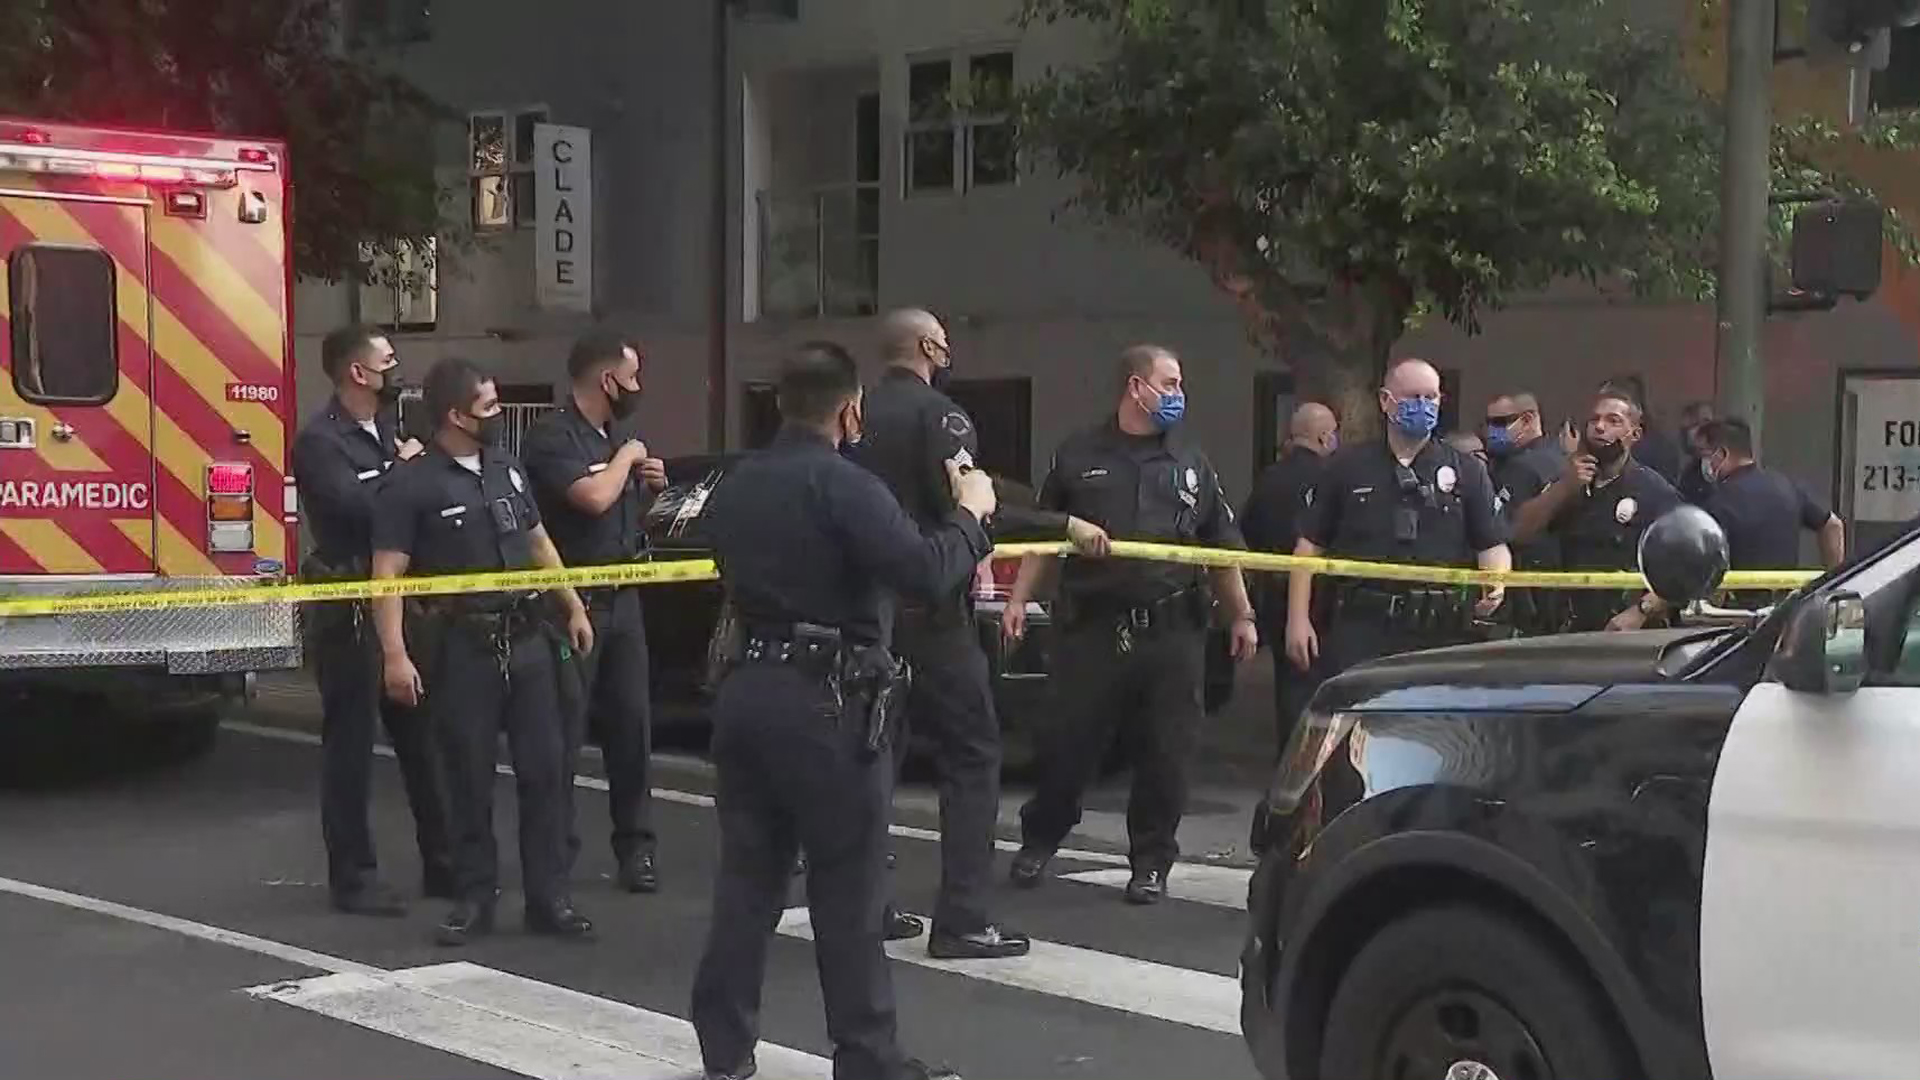 Police stand at the scene where a chase ended following a carjacking that involved a baby and grandmother in downtown L.A. on Oct. 17, 2020. (KTLA)